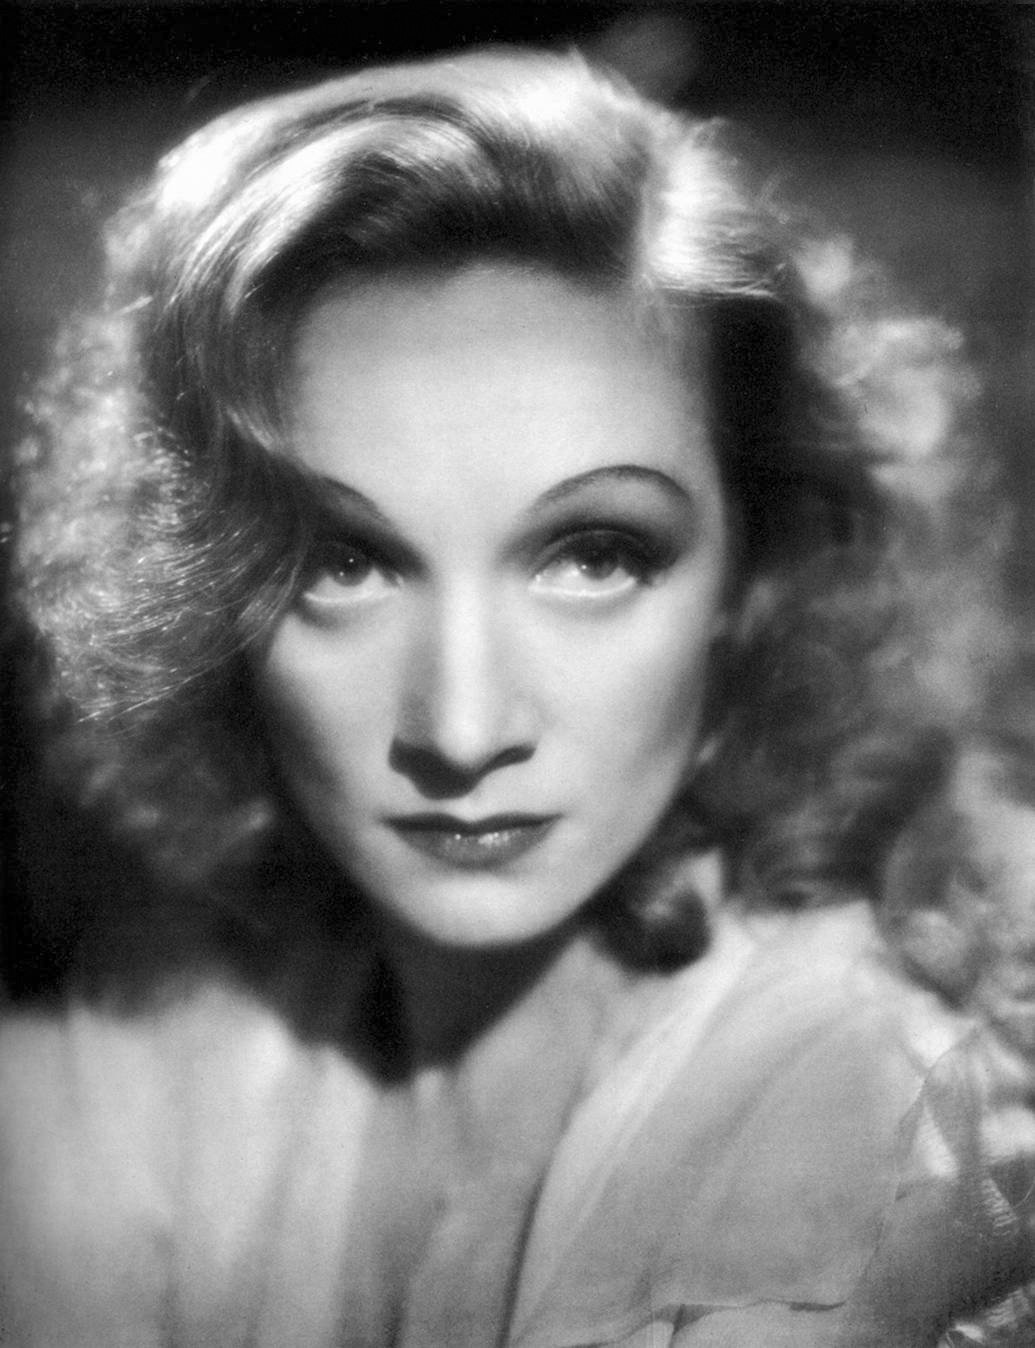 Marlene Dietrich images 9 from 10